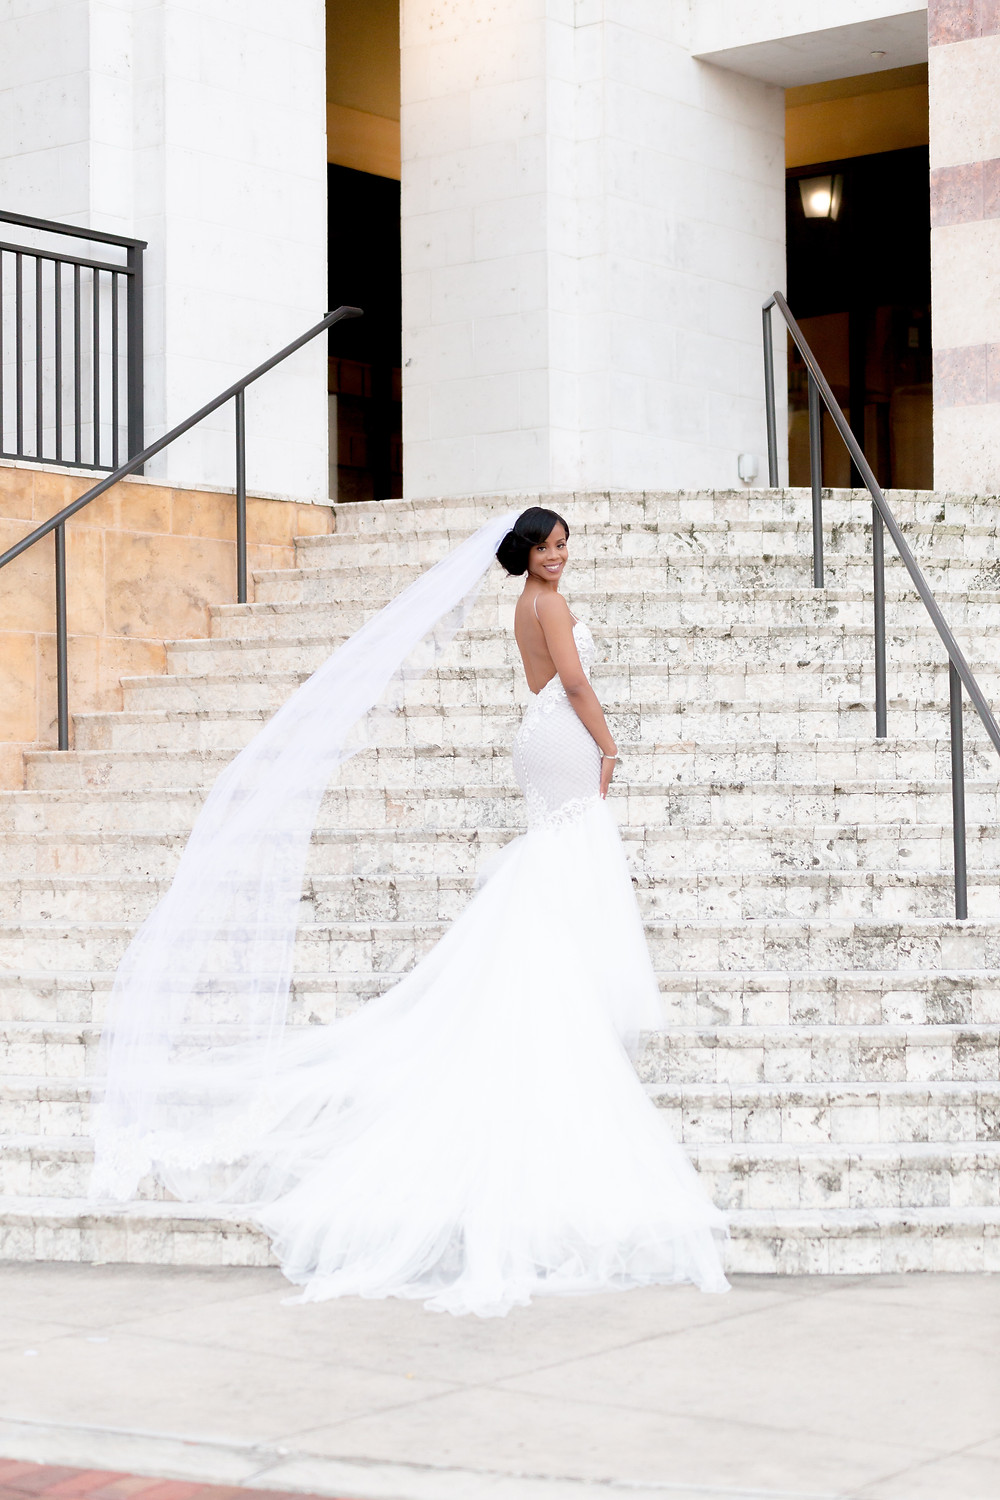 2019 Wedding Fashion Trends, Unashamed Imaging photography, Bride in gown with flowing veil on stairs